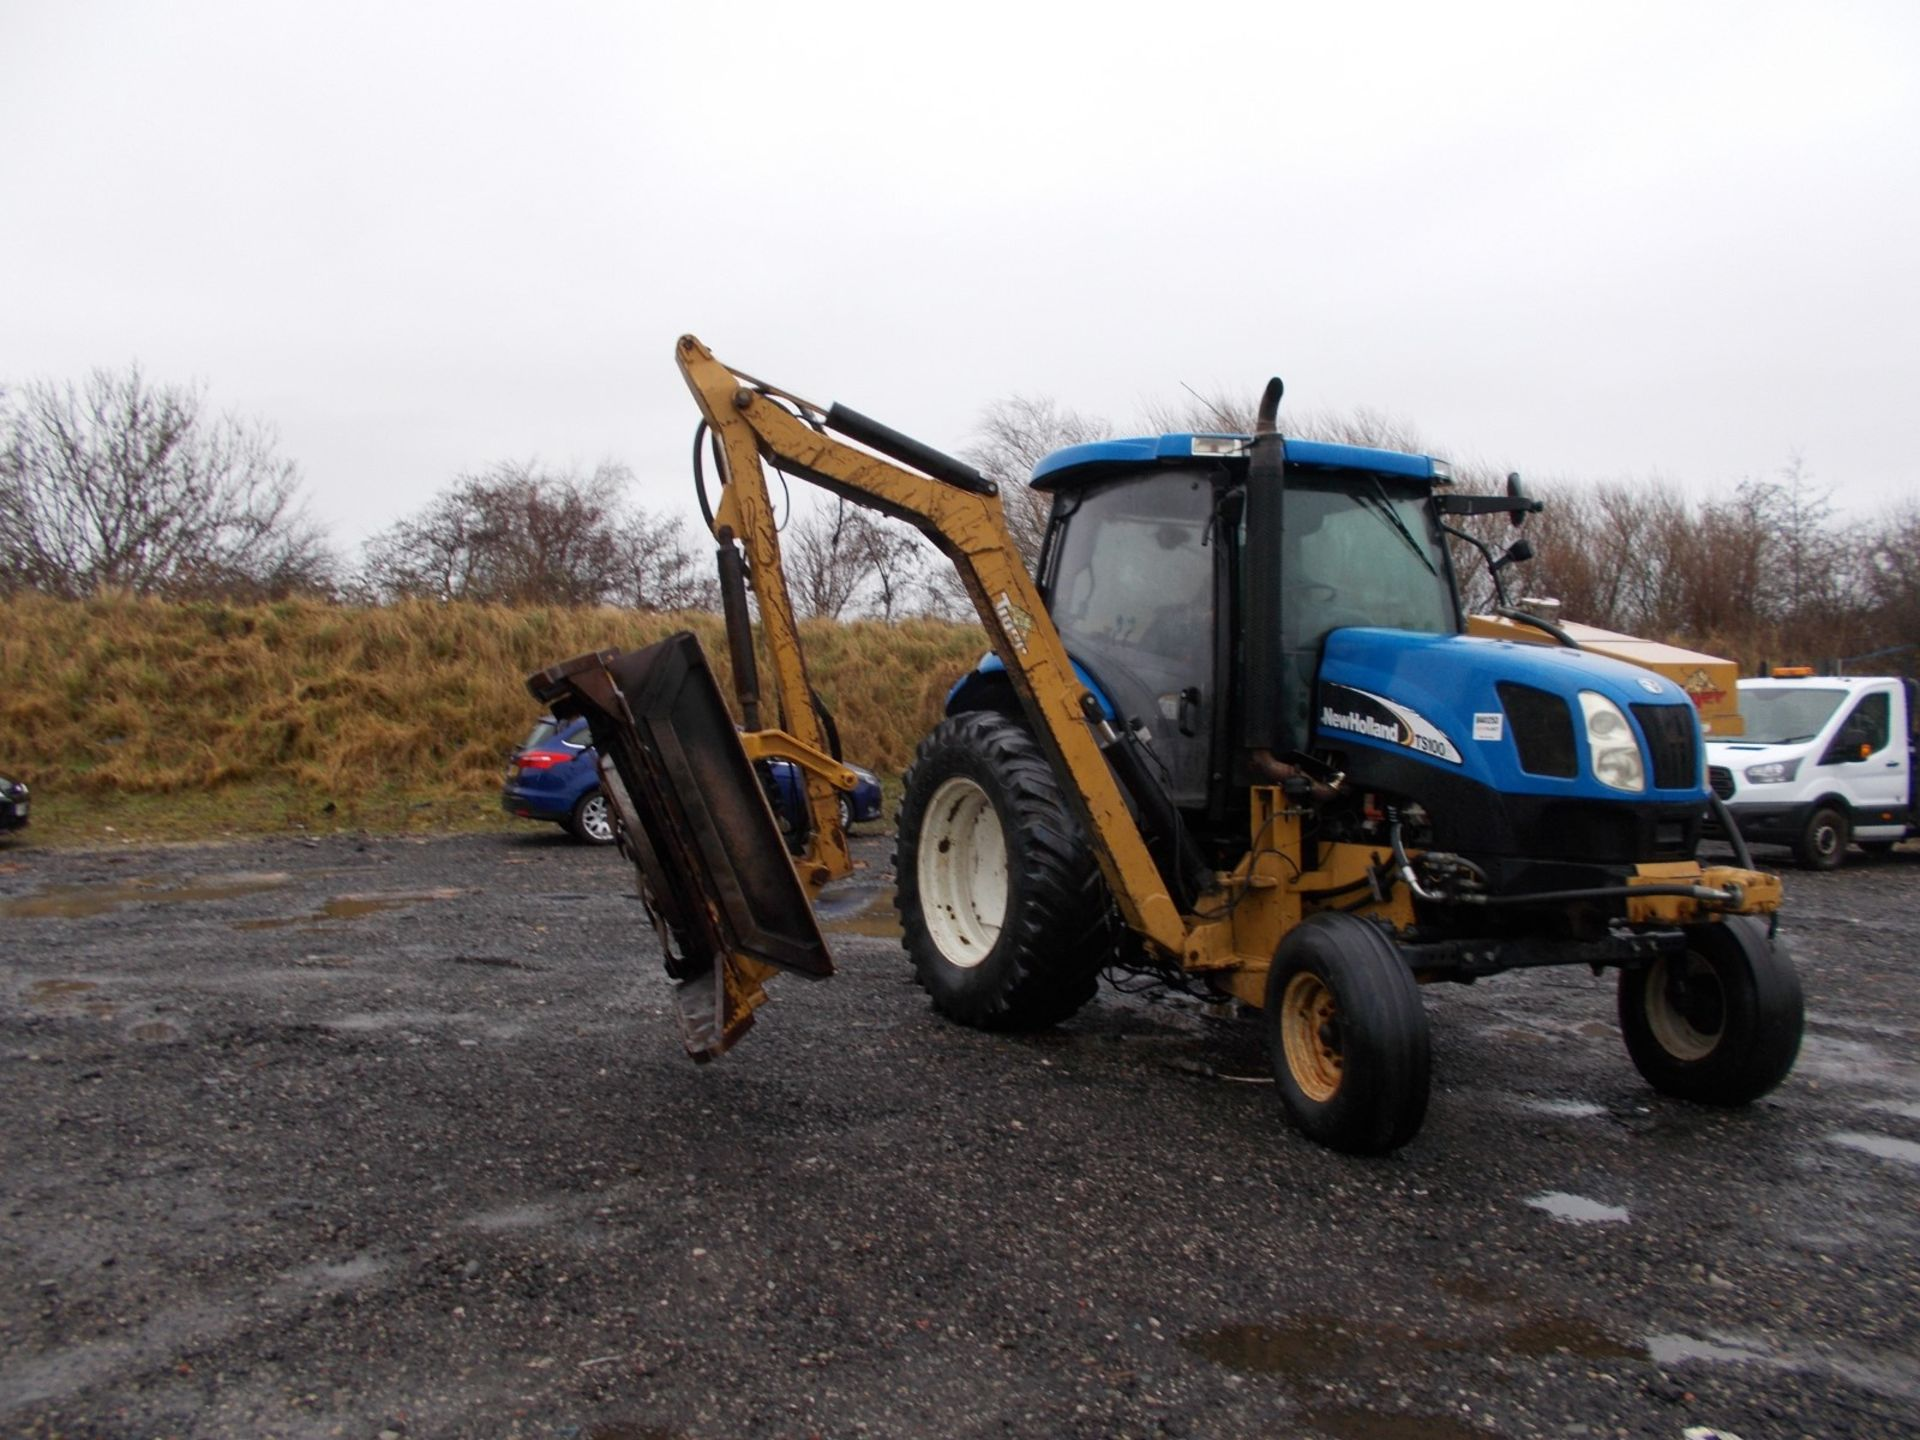 2003 NEW HOLLAND TS100A TRACTOR WITH MOWER ATTACHMENT, 4.5 LITRE 100HP TURBO DIESEL *PLUS VAT* - Image 15 of 24